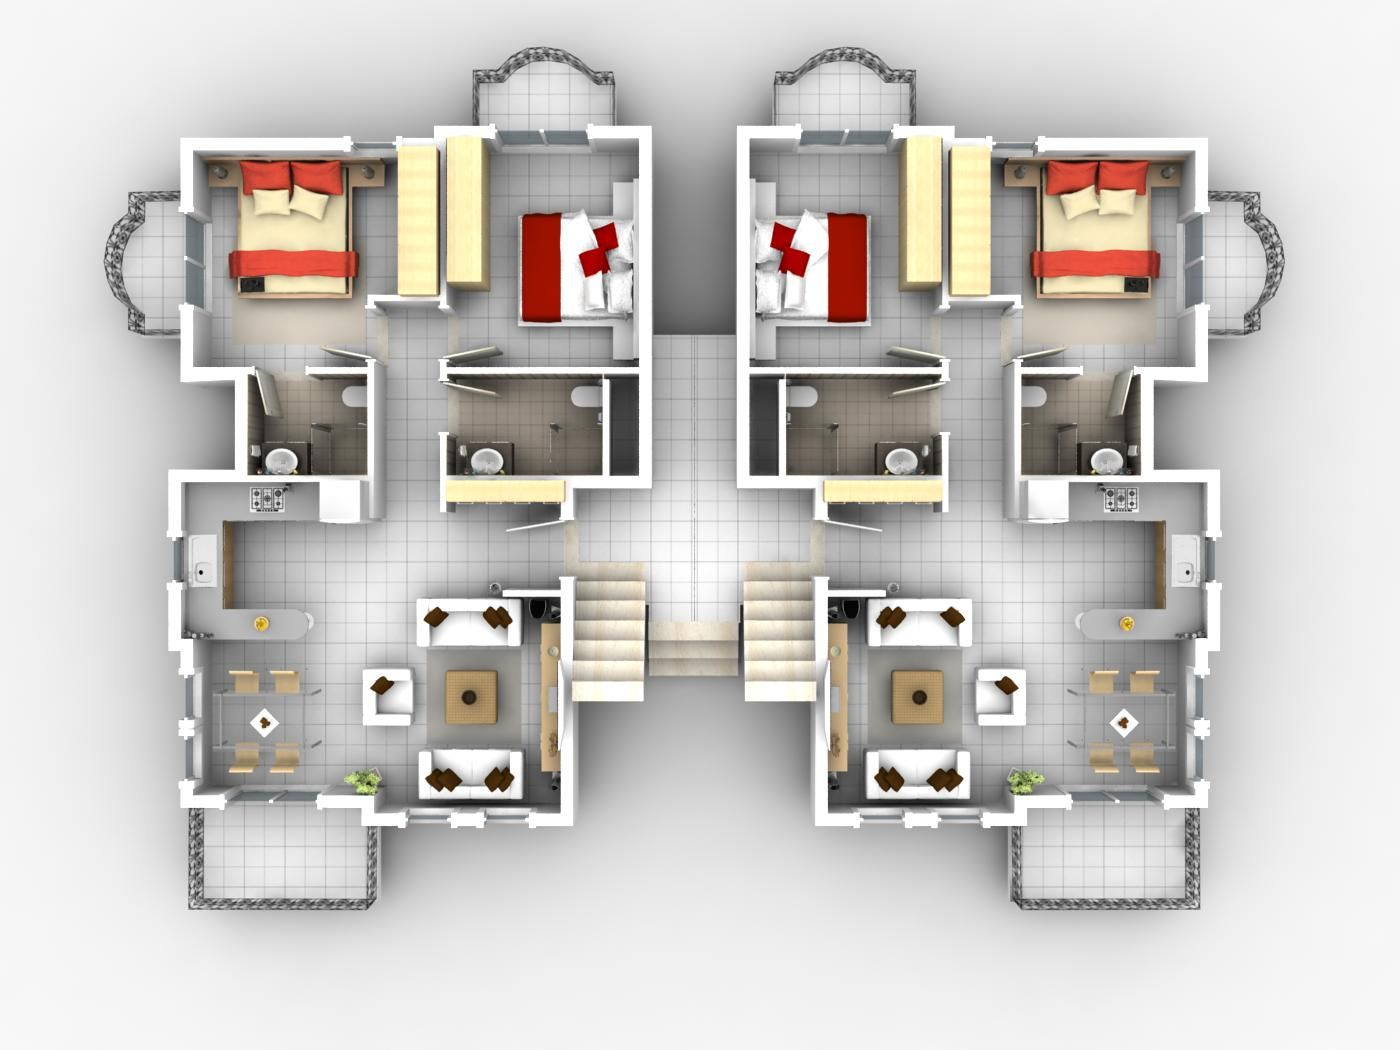 2 bedroom apartmenthouse plans - House Designs Plans